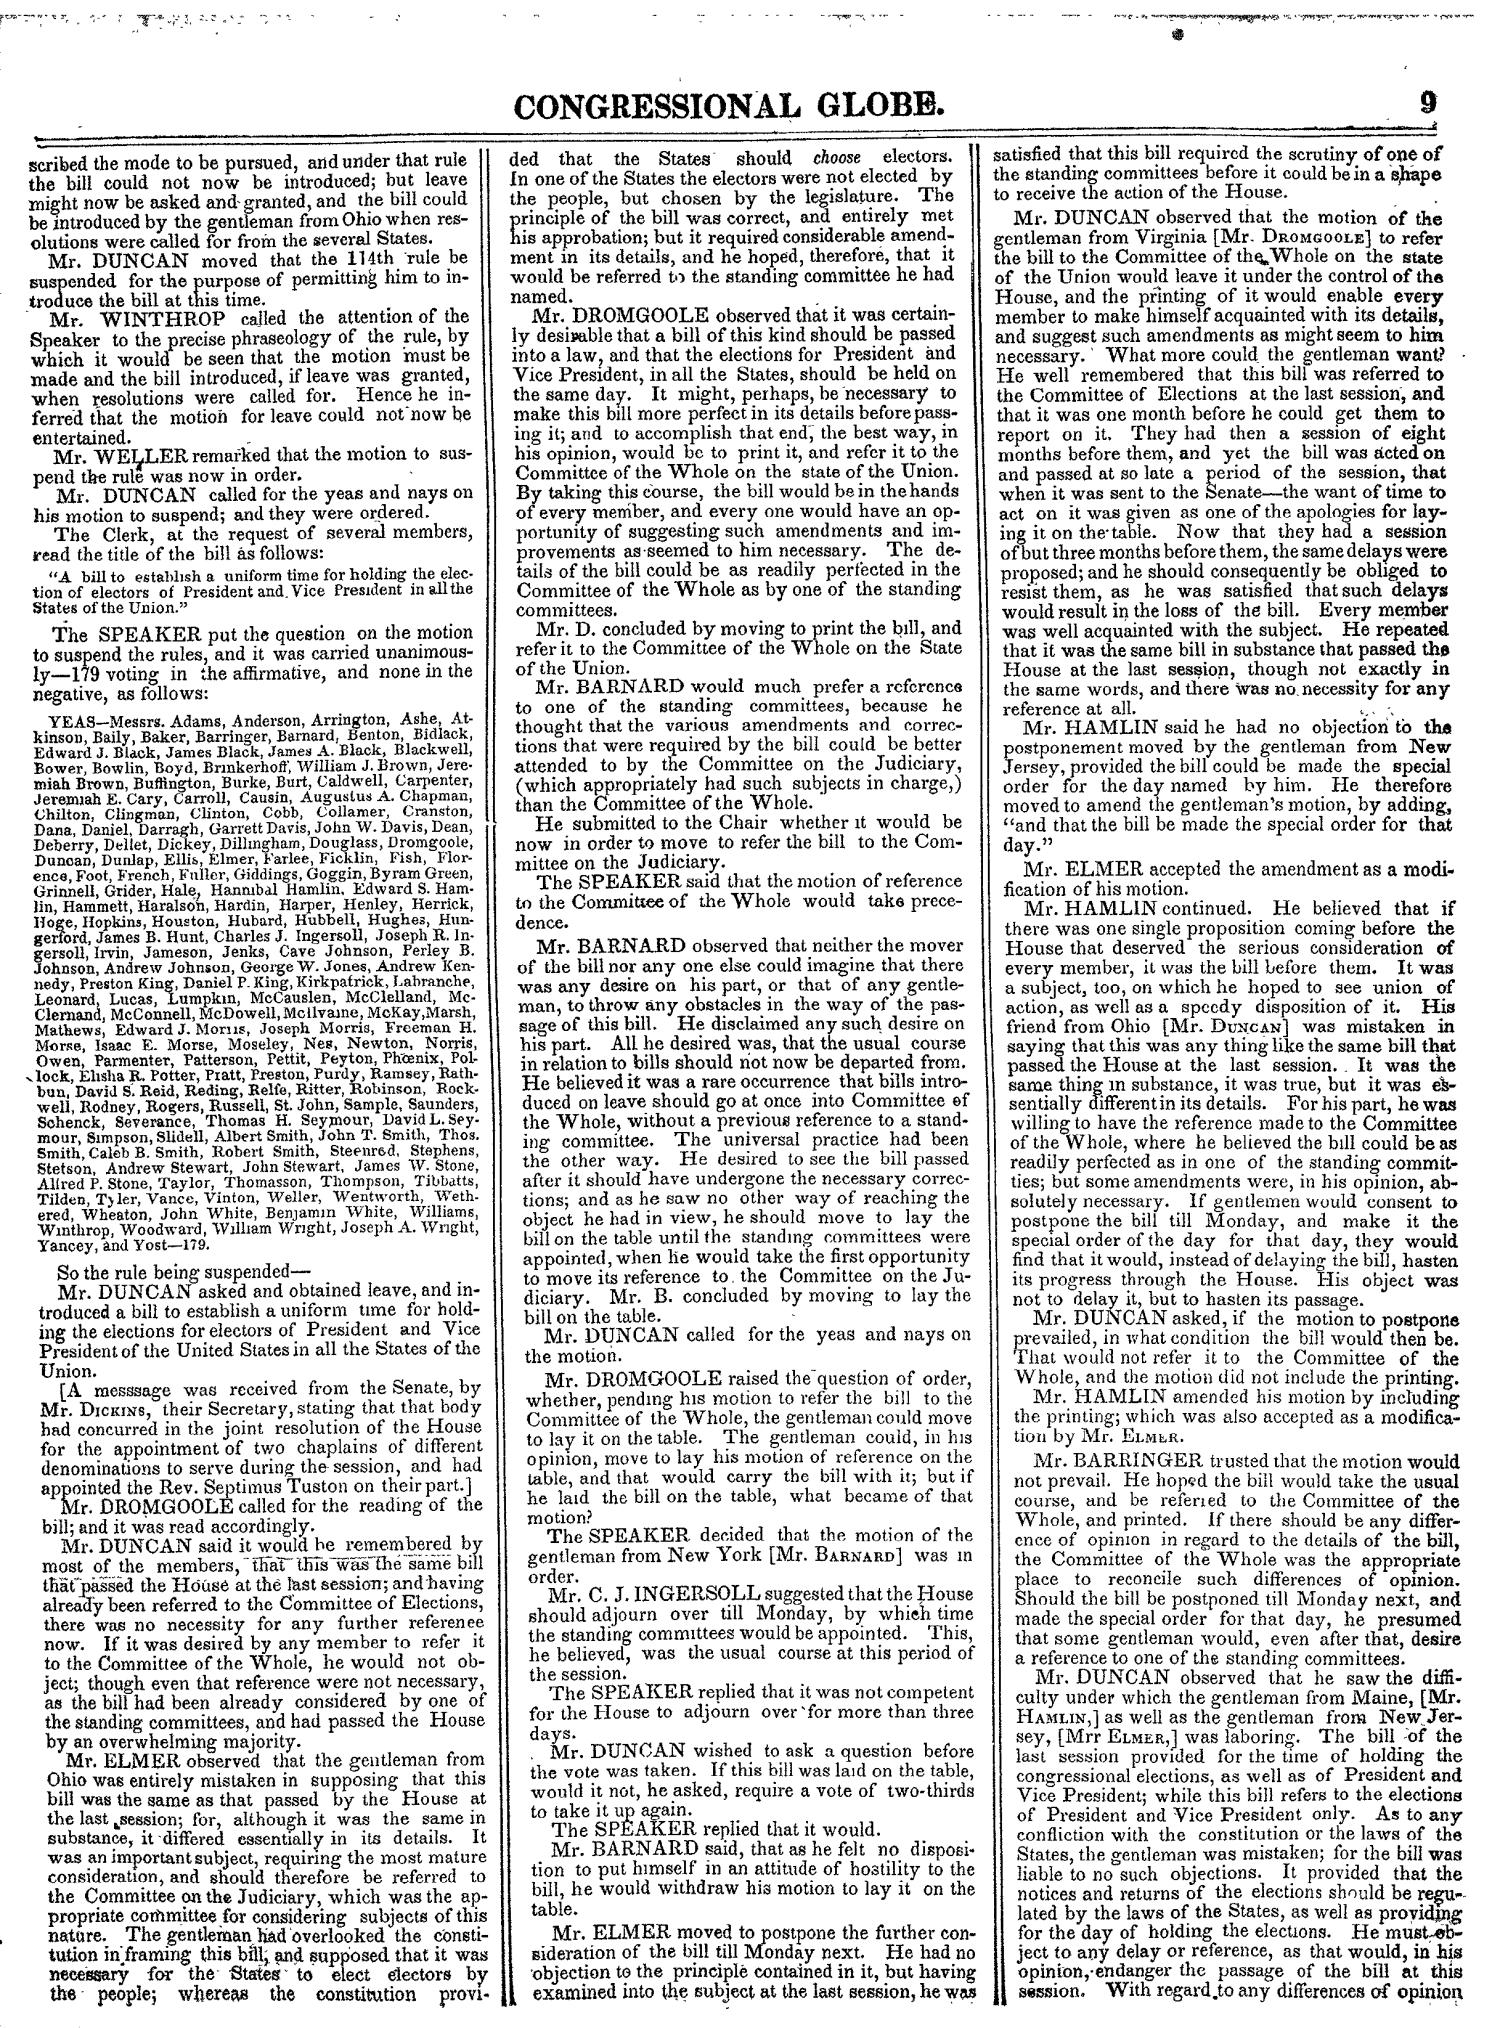 The Congressional Globe, Volume 14: Twenty-Eighth Congress, Second Session                                                                                                      9